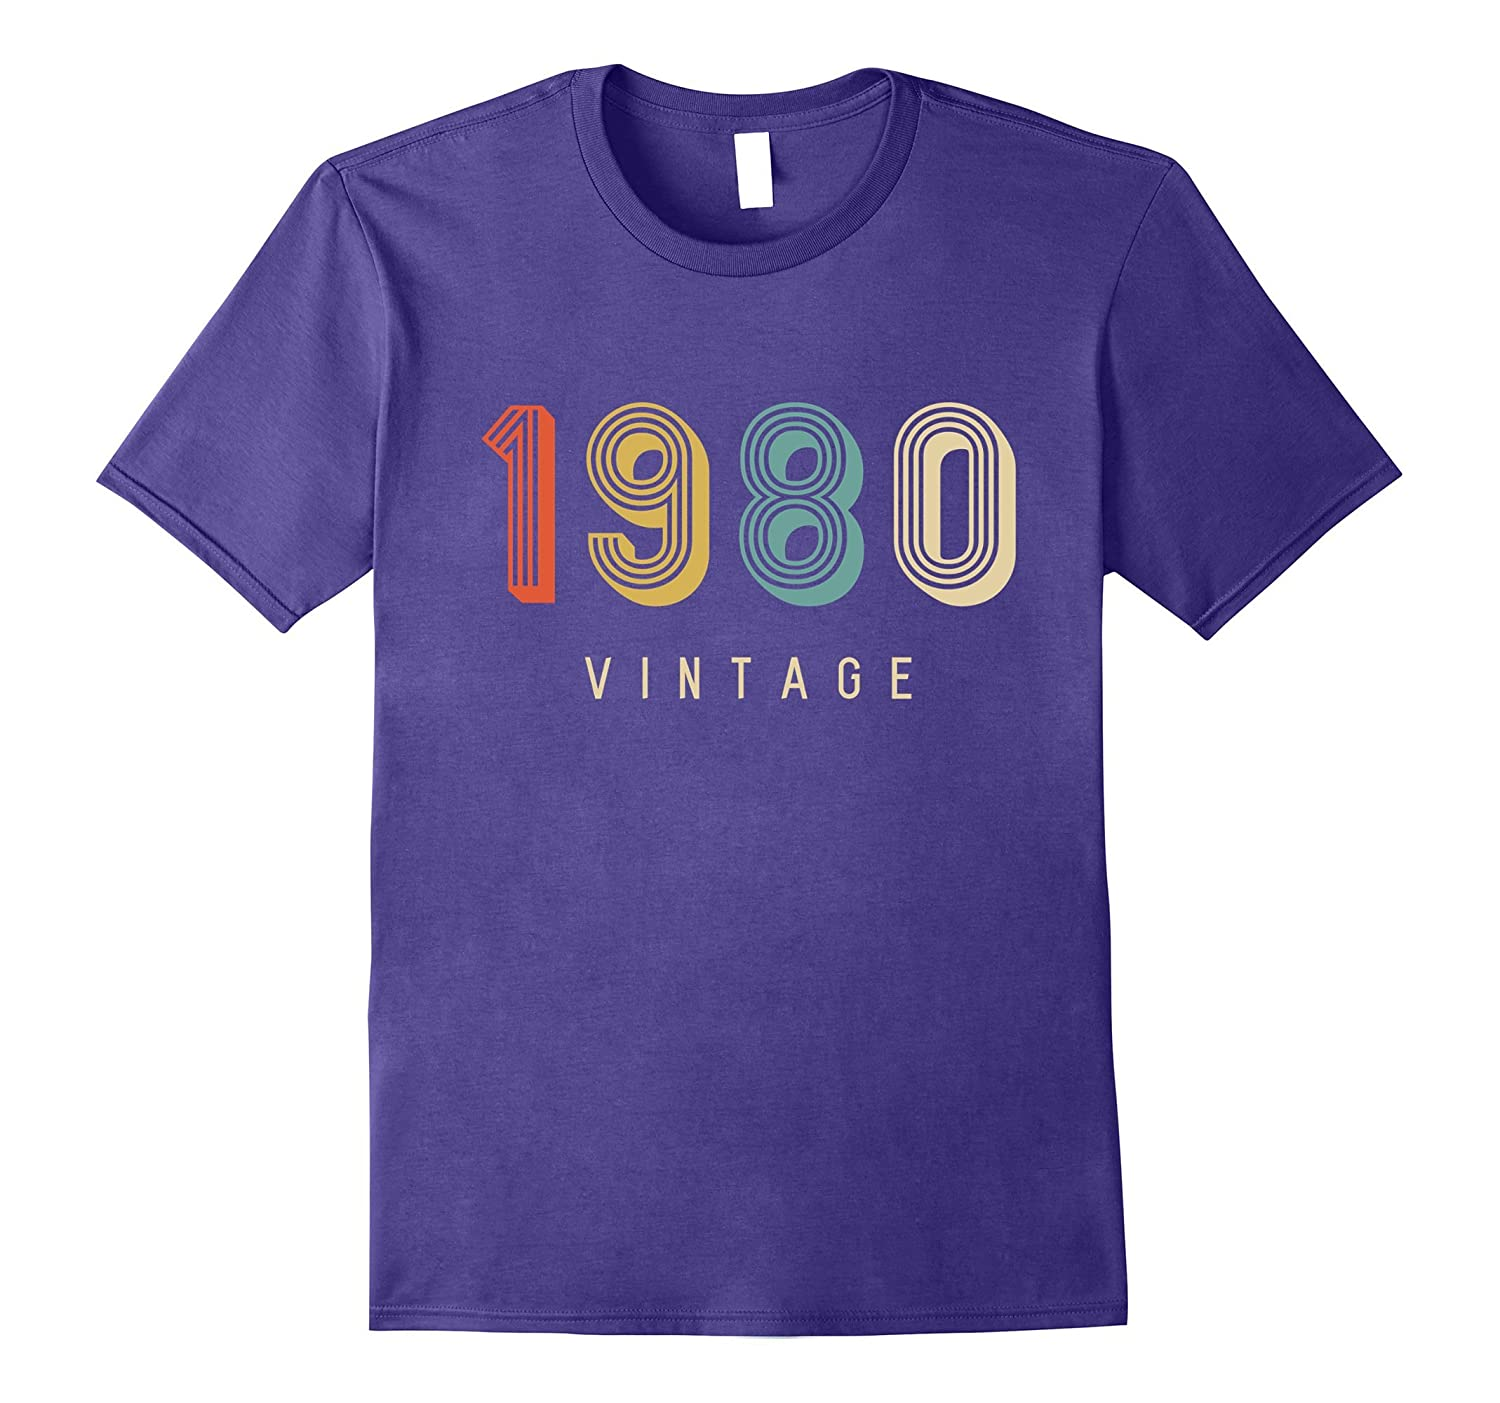 37th Birthday Gift Shirt Vintage 1980-FL